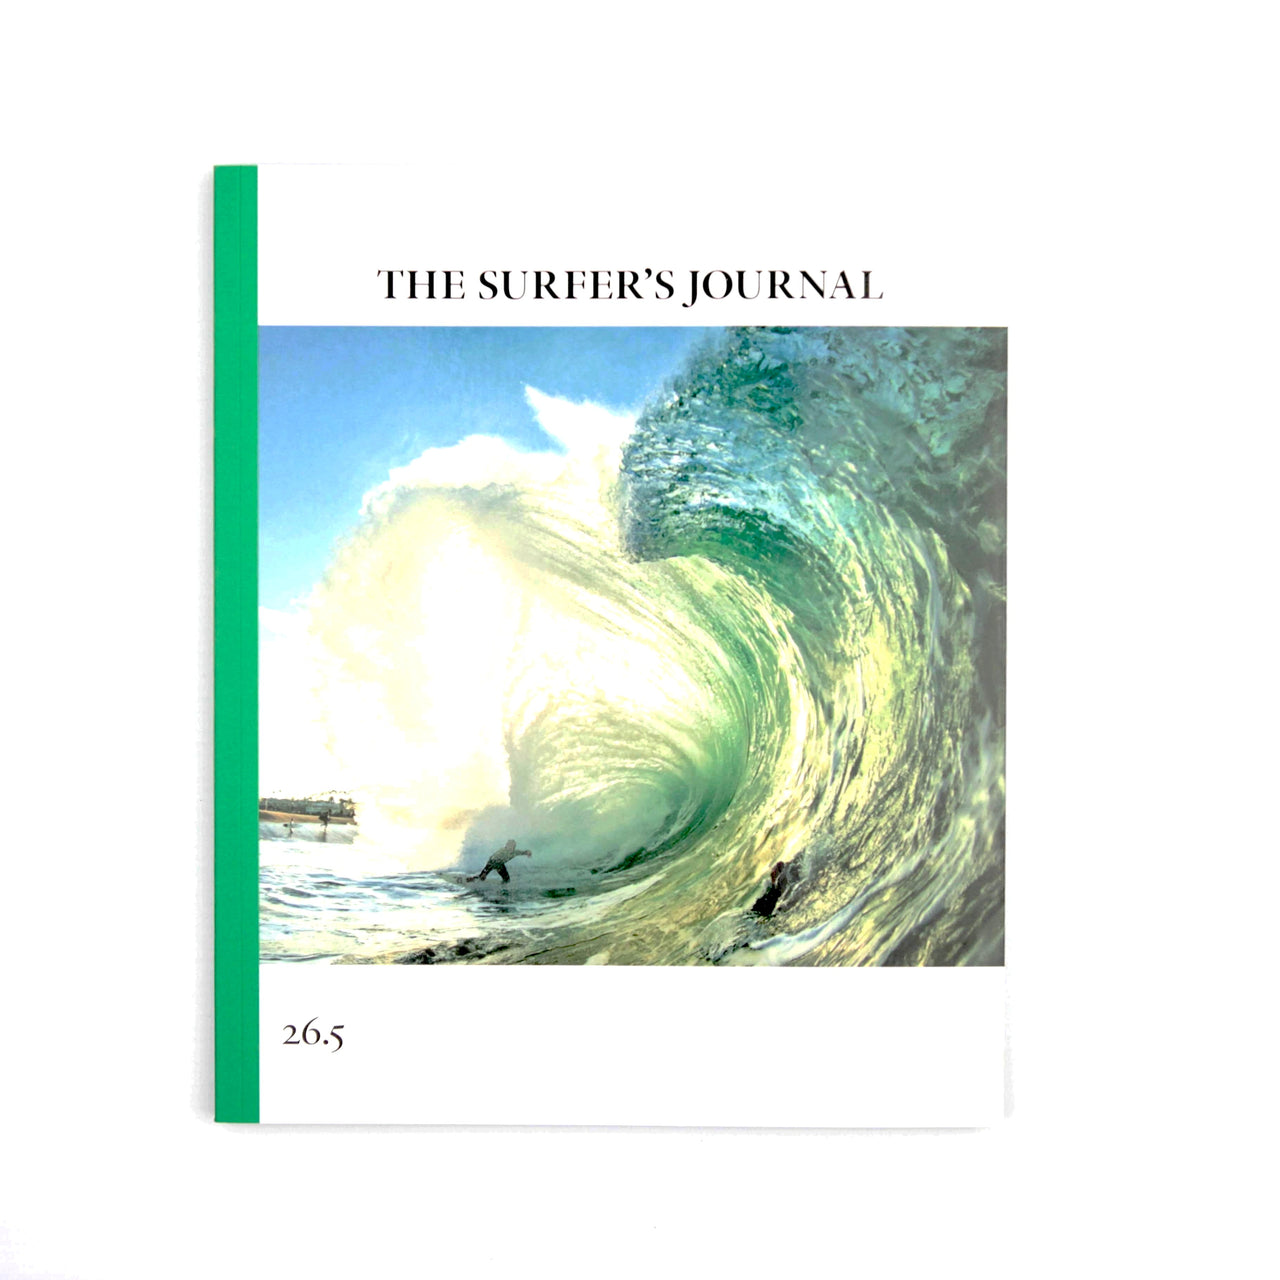 The Surfer's Journal 26.5